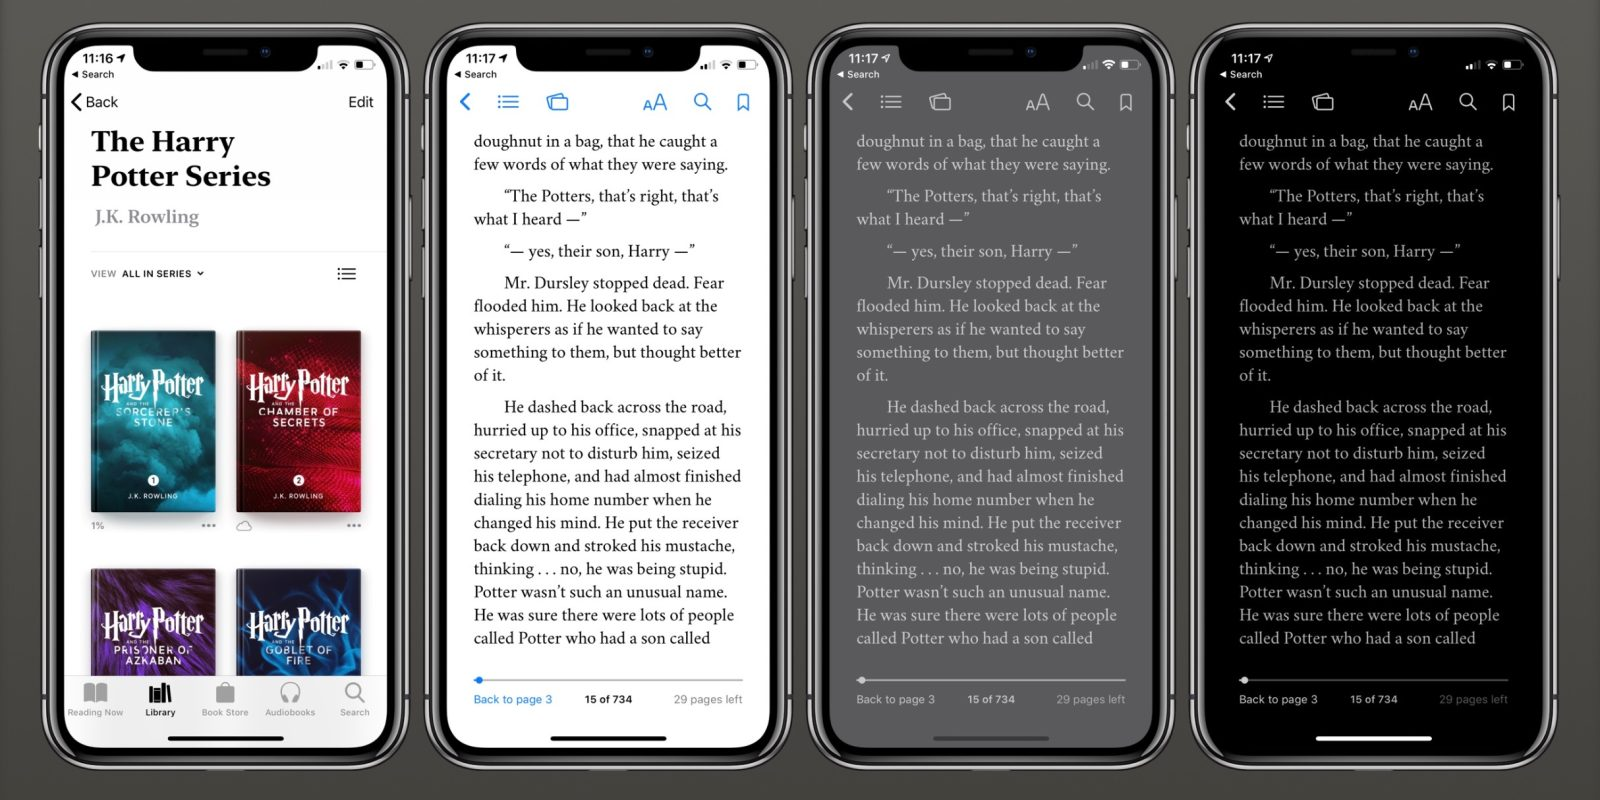 How to use dark mode with Apple Books on iPhone and iPad - 9to5Mac